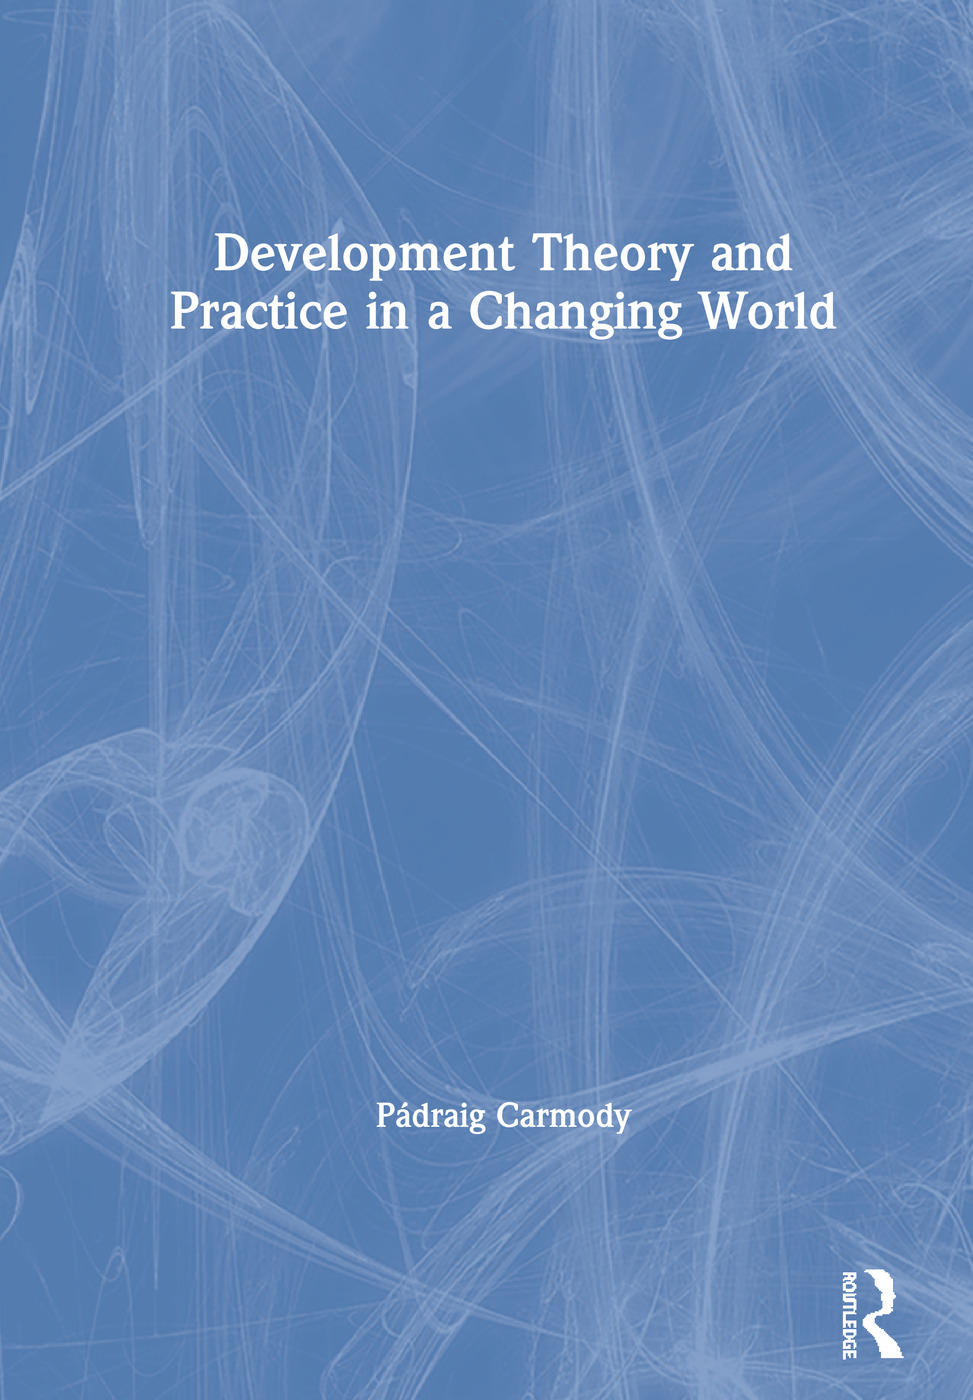 Development Theory and Practice in a Changing World book cover